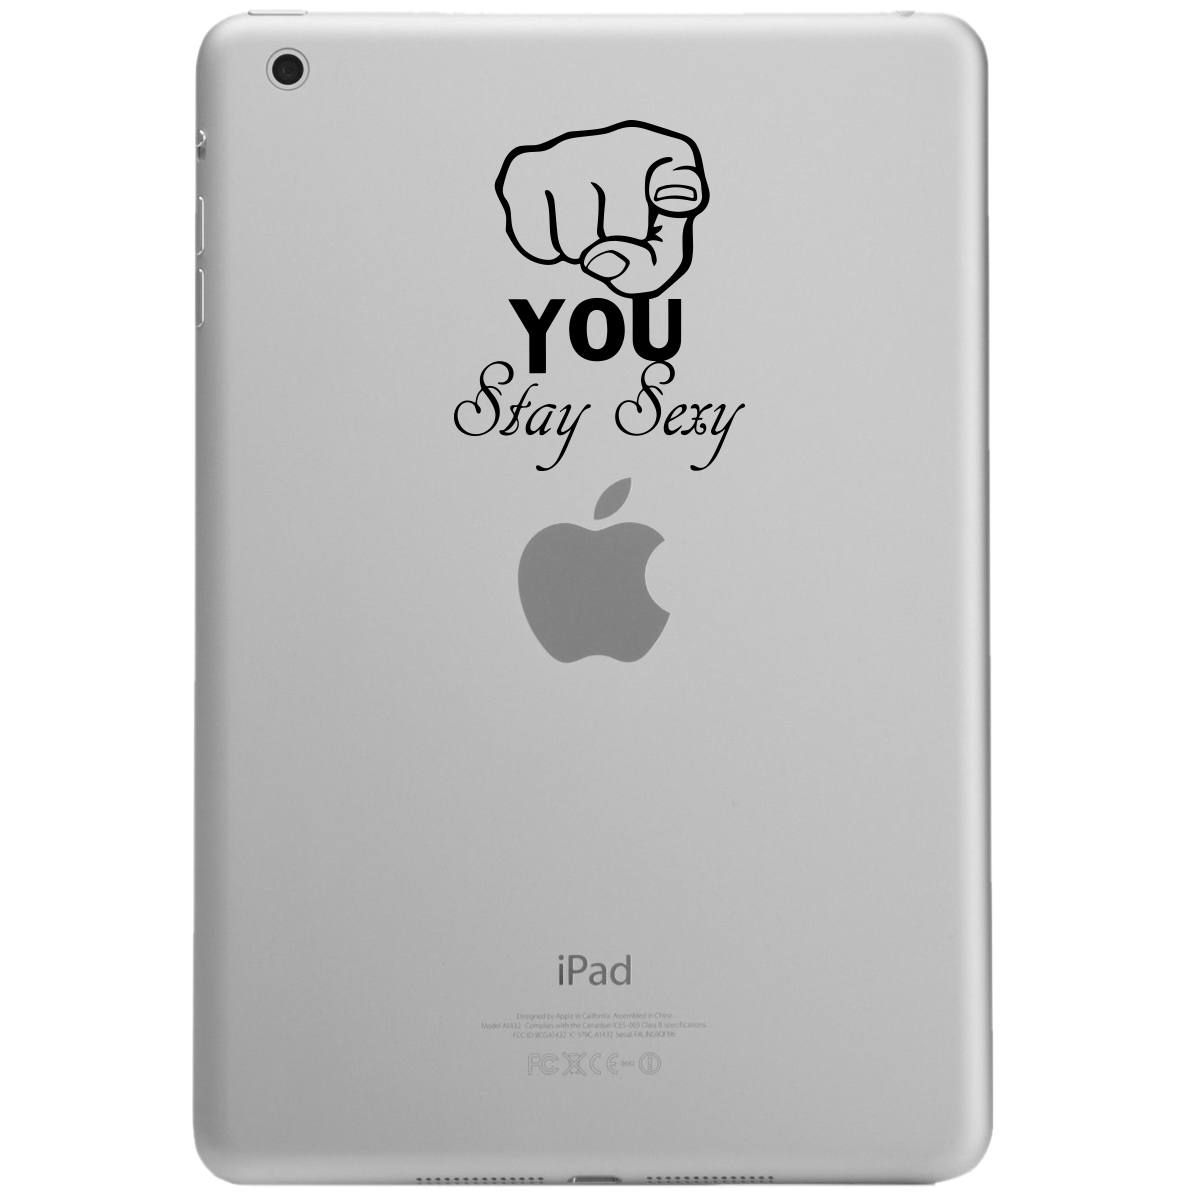 You Stay Sexy Funny Pointing Hand iPad Tablet Vinyl Sticker Decal